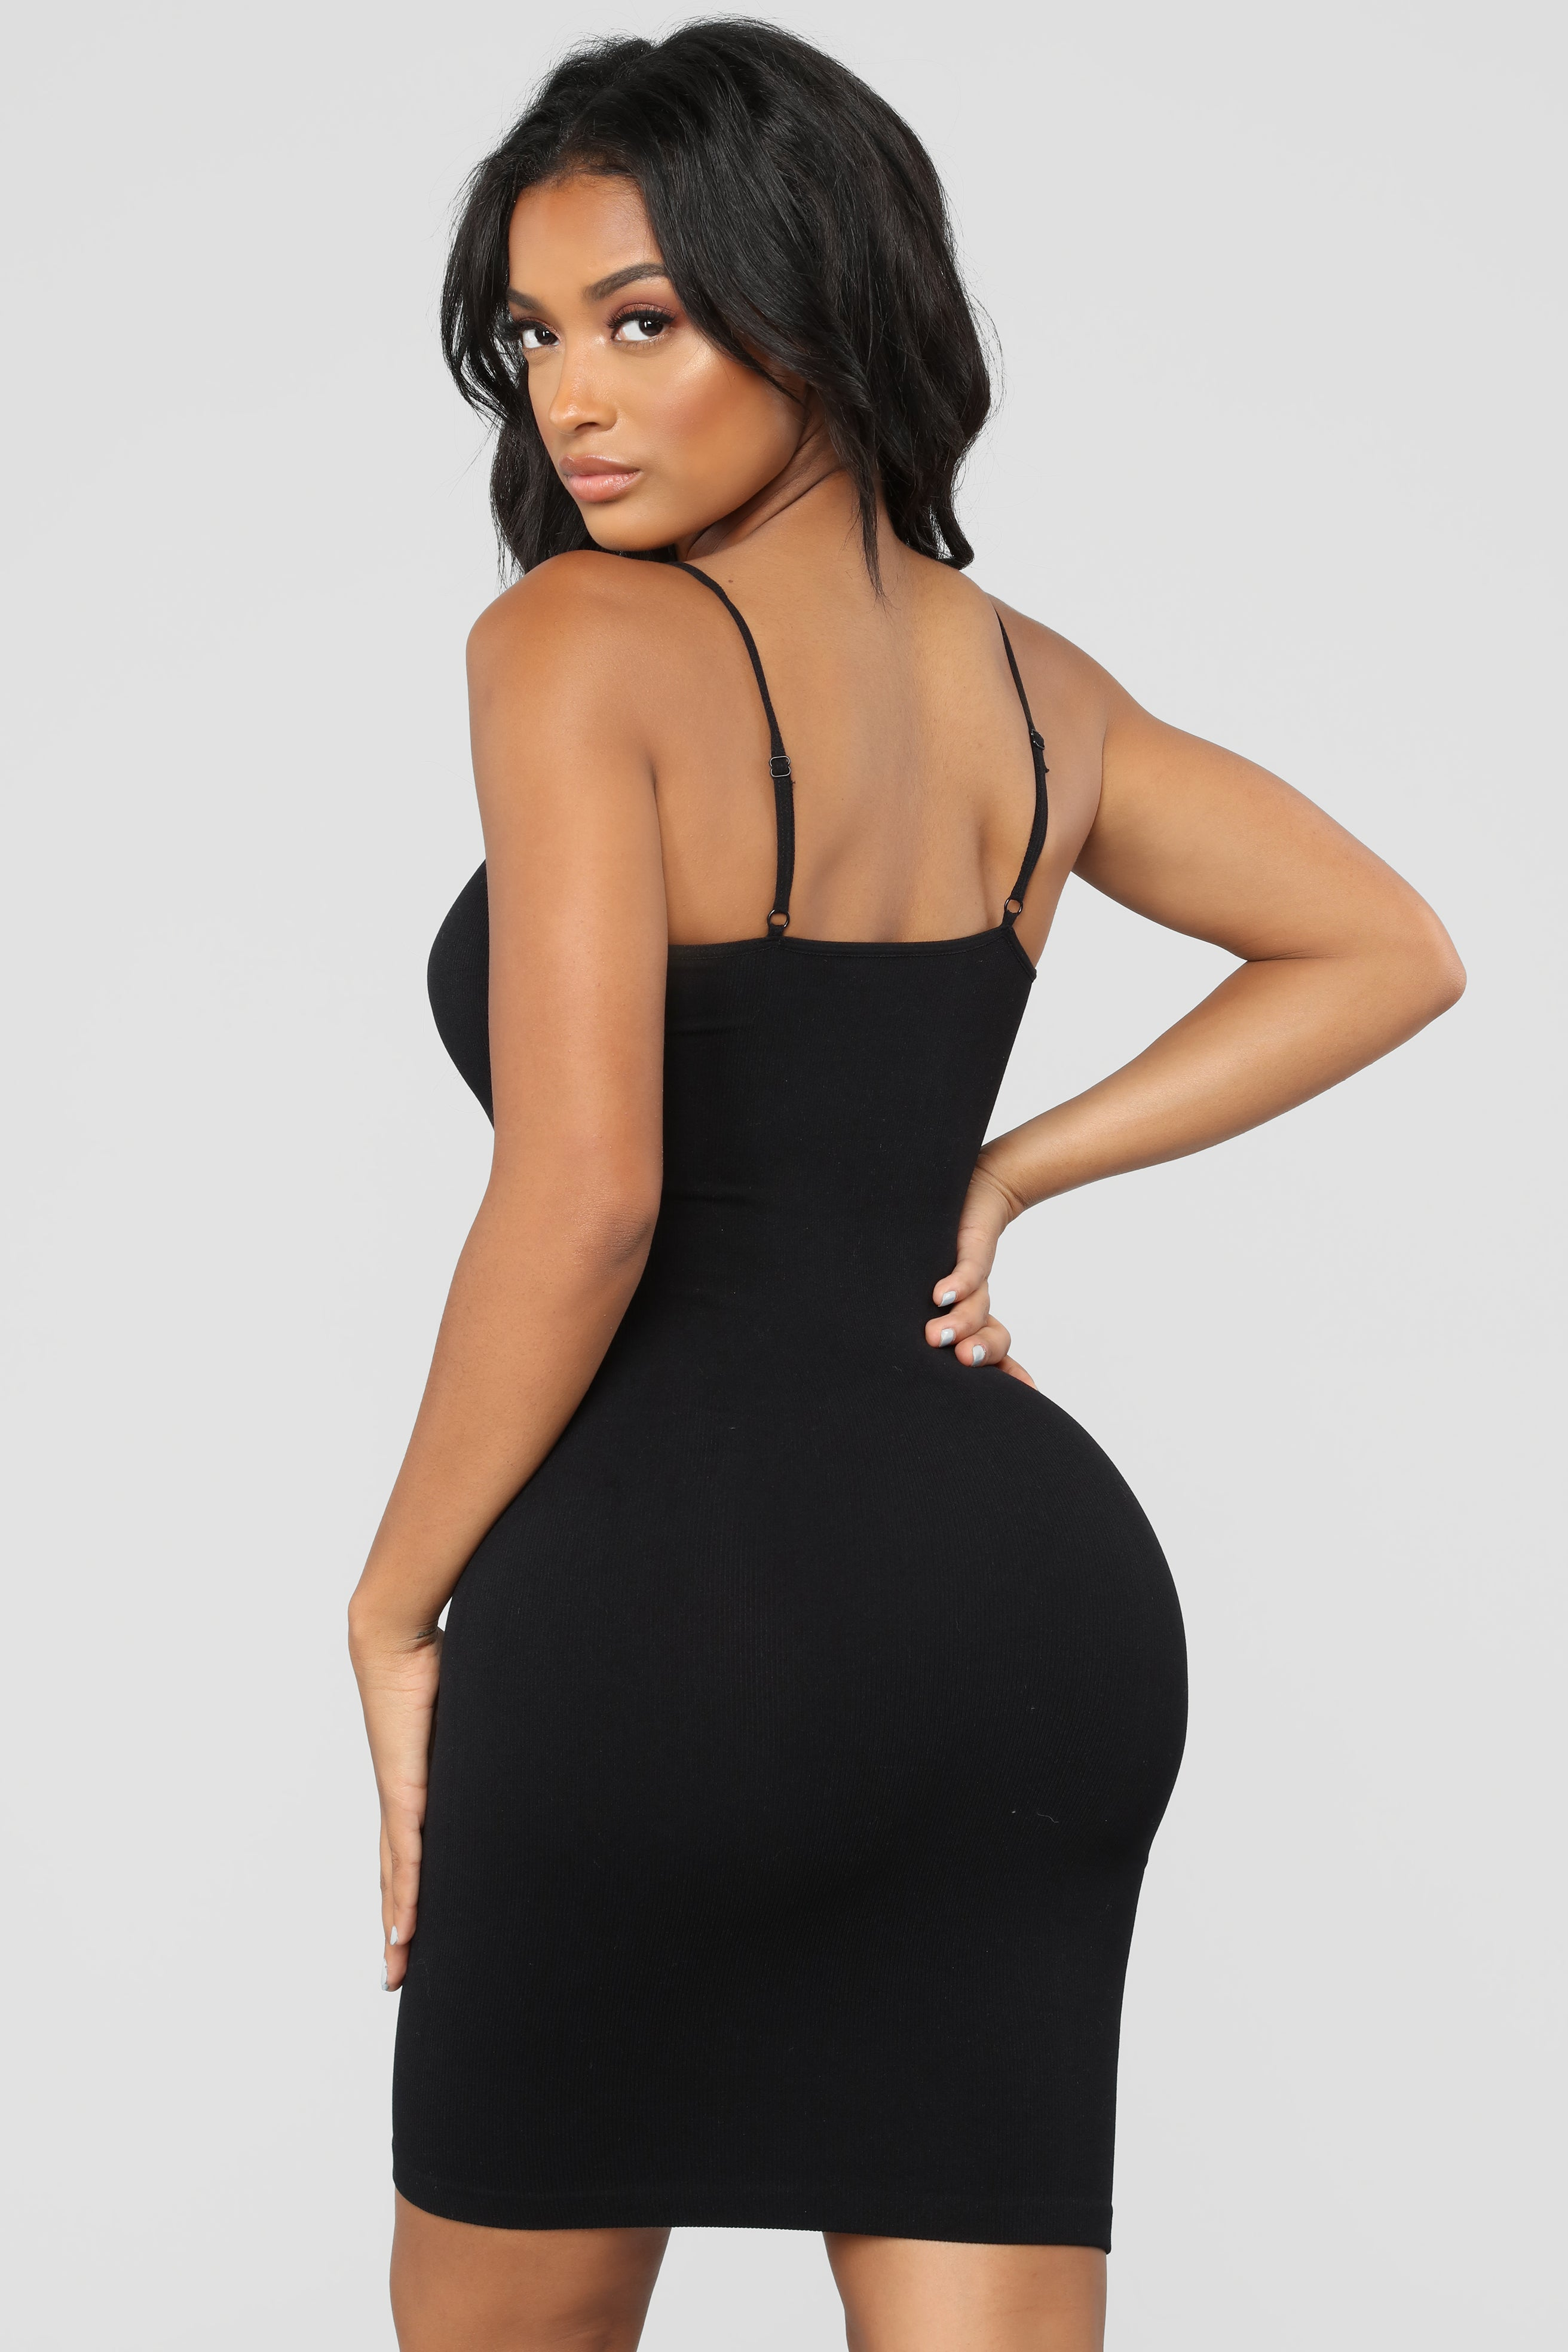 ea67745babba4 Forever Snatched Shapewear Dress - Black